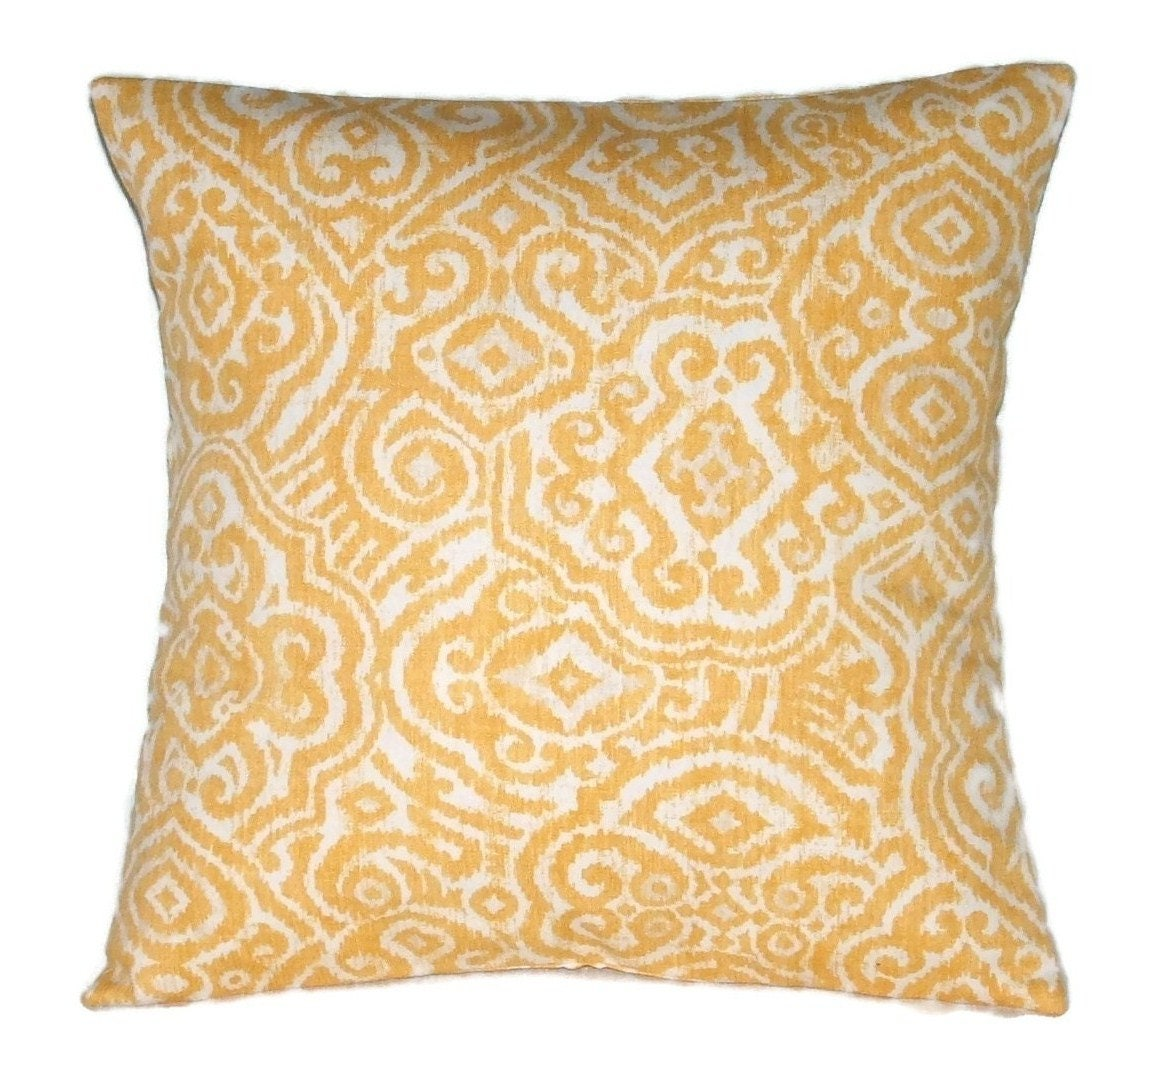 Pillow Cover Throw Pillow Cover Decorative Pillow Cover